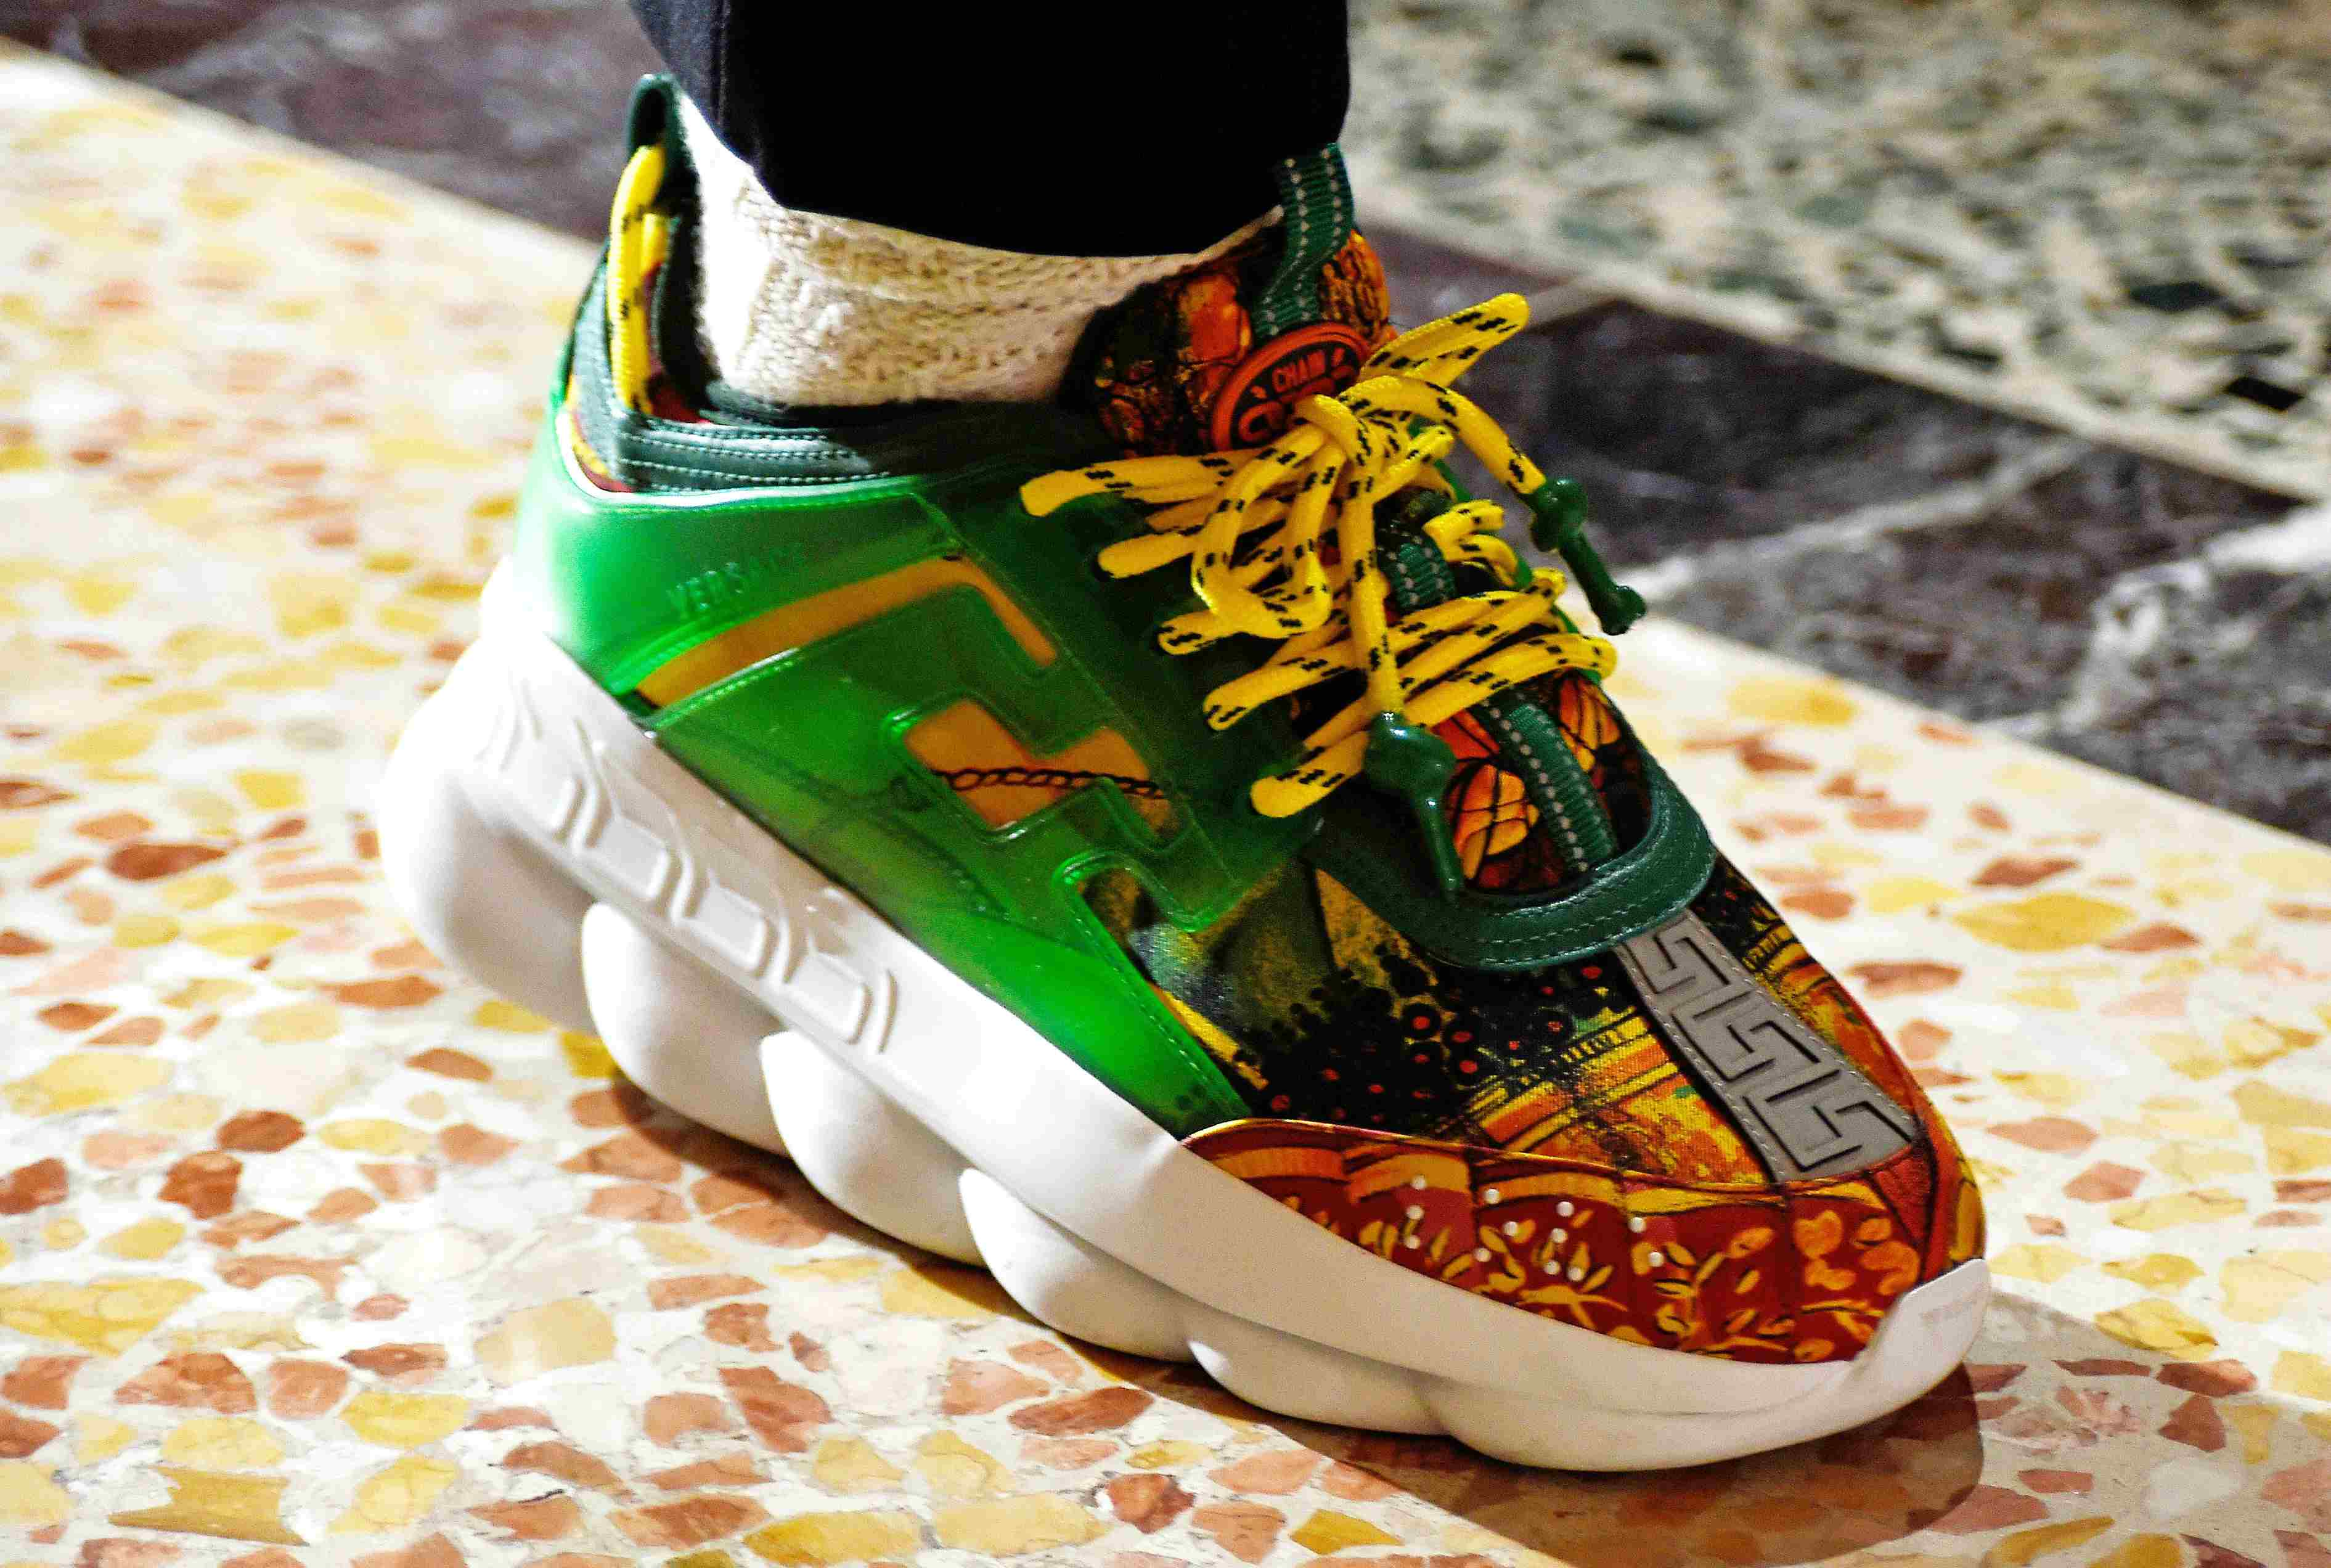 Versace Teams With 2 Chainz on Sneakers